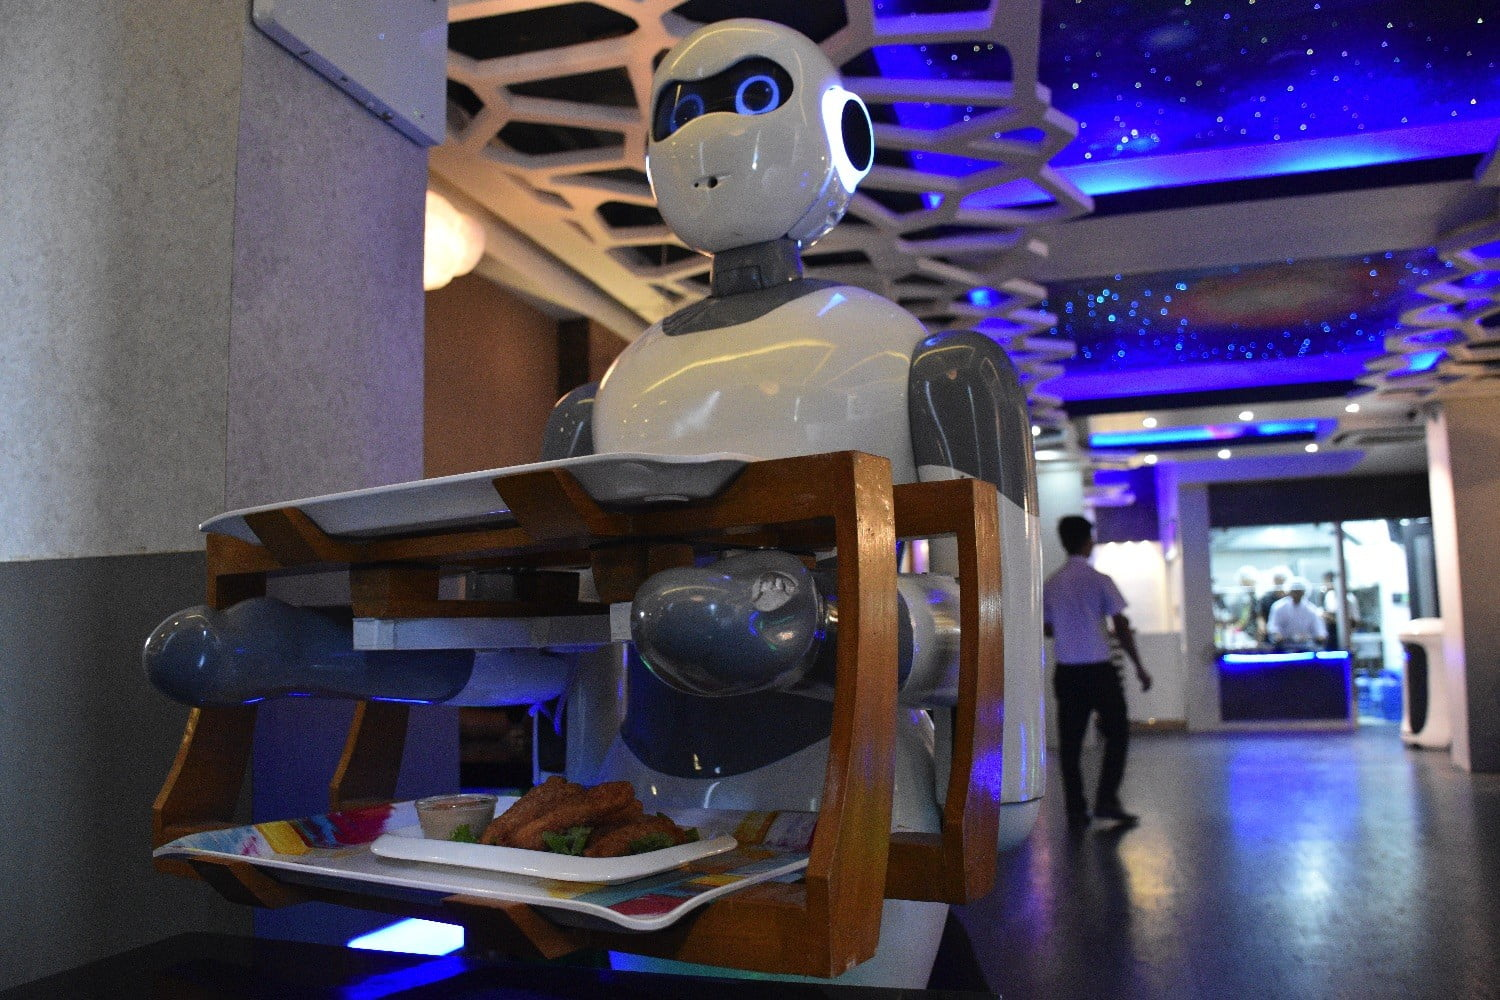 Step inside the Nepalese restaurant staffed by robot waiters